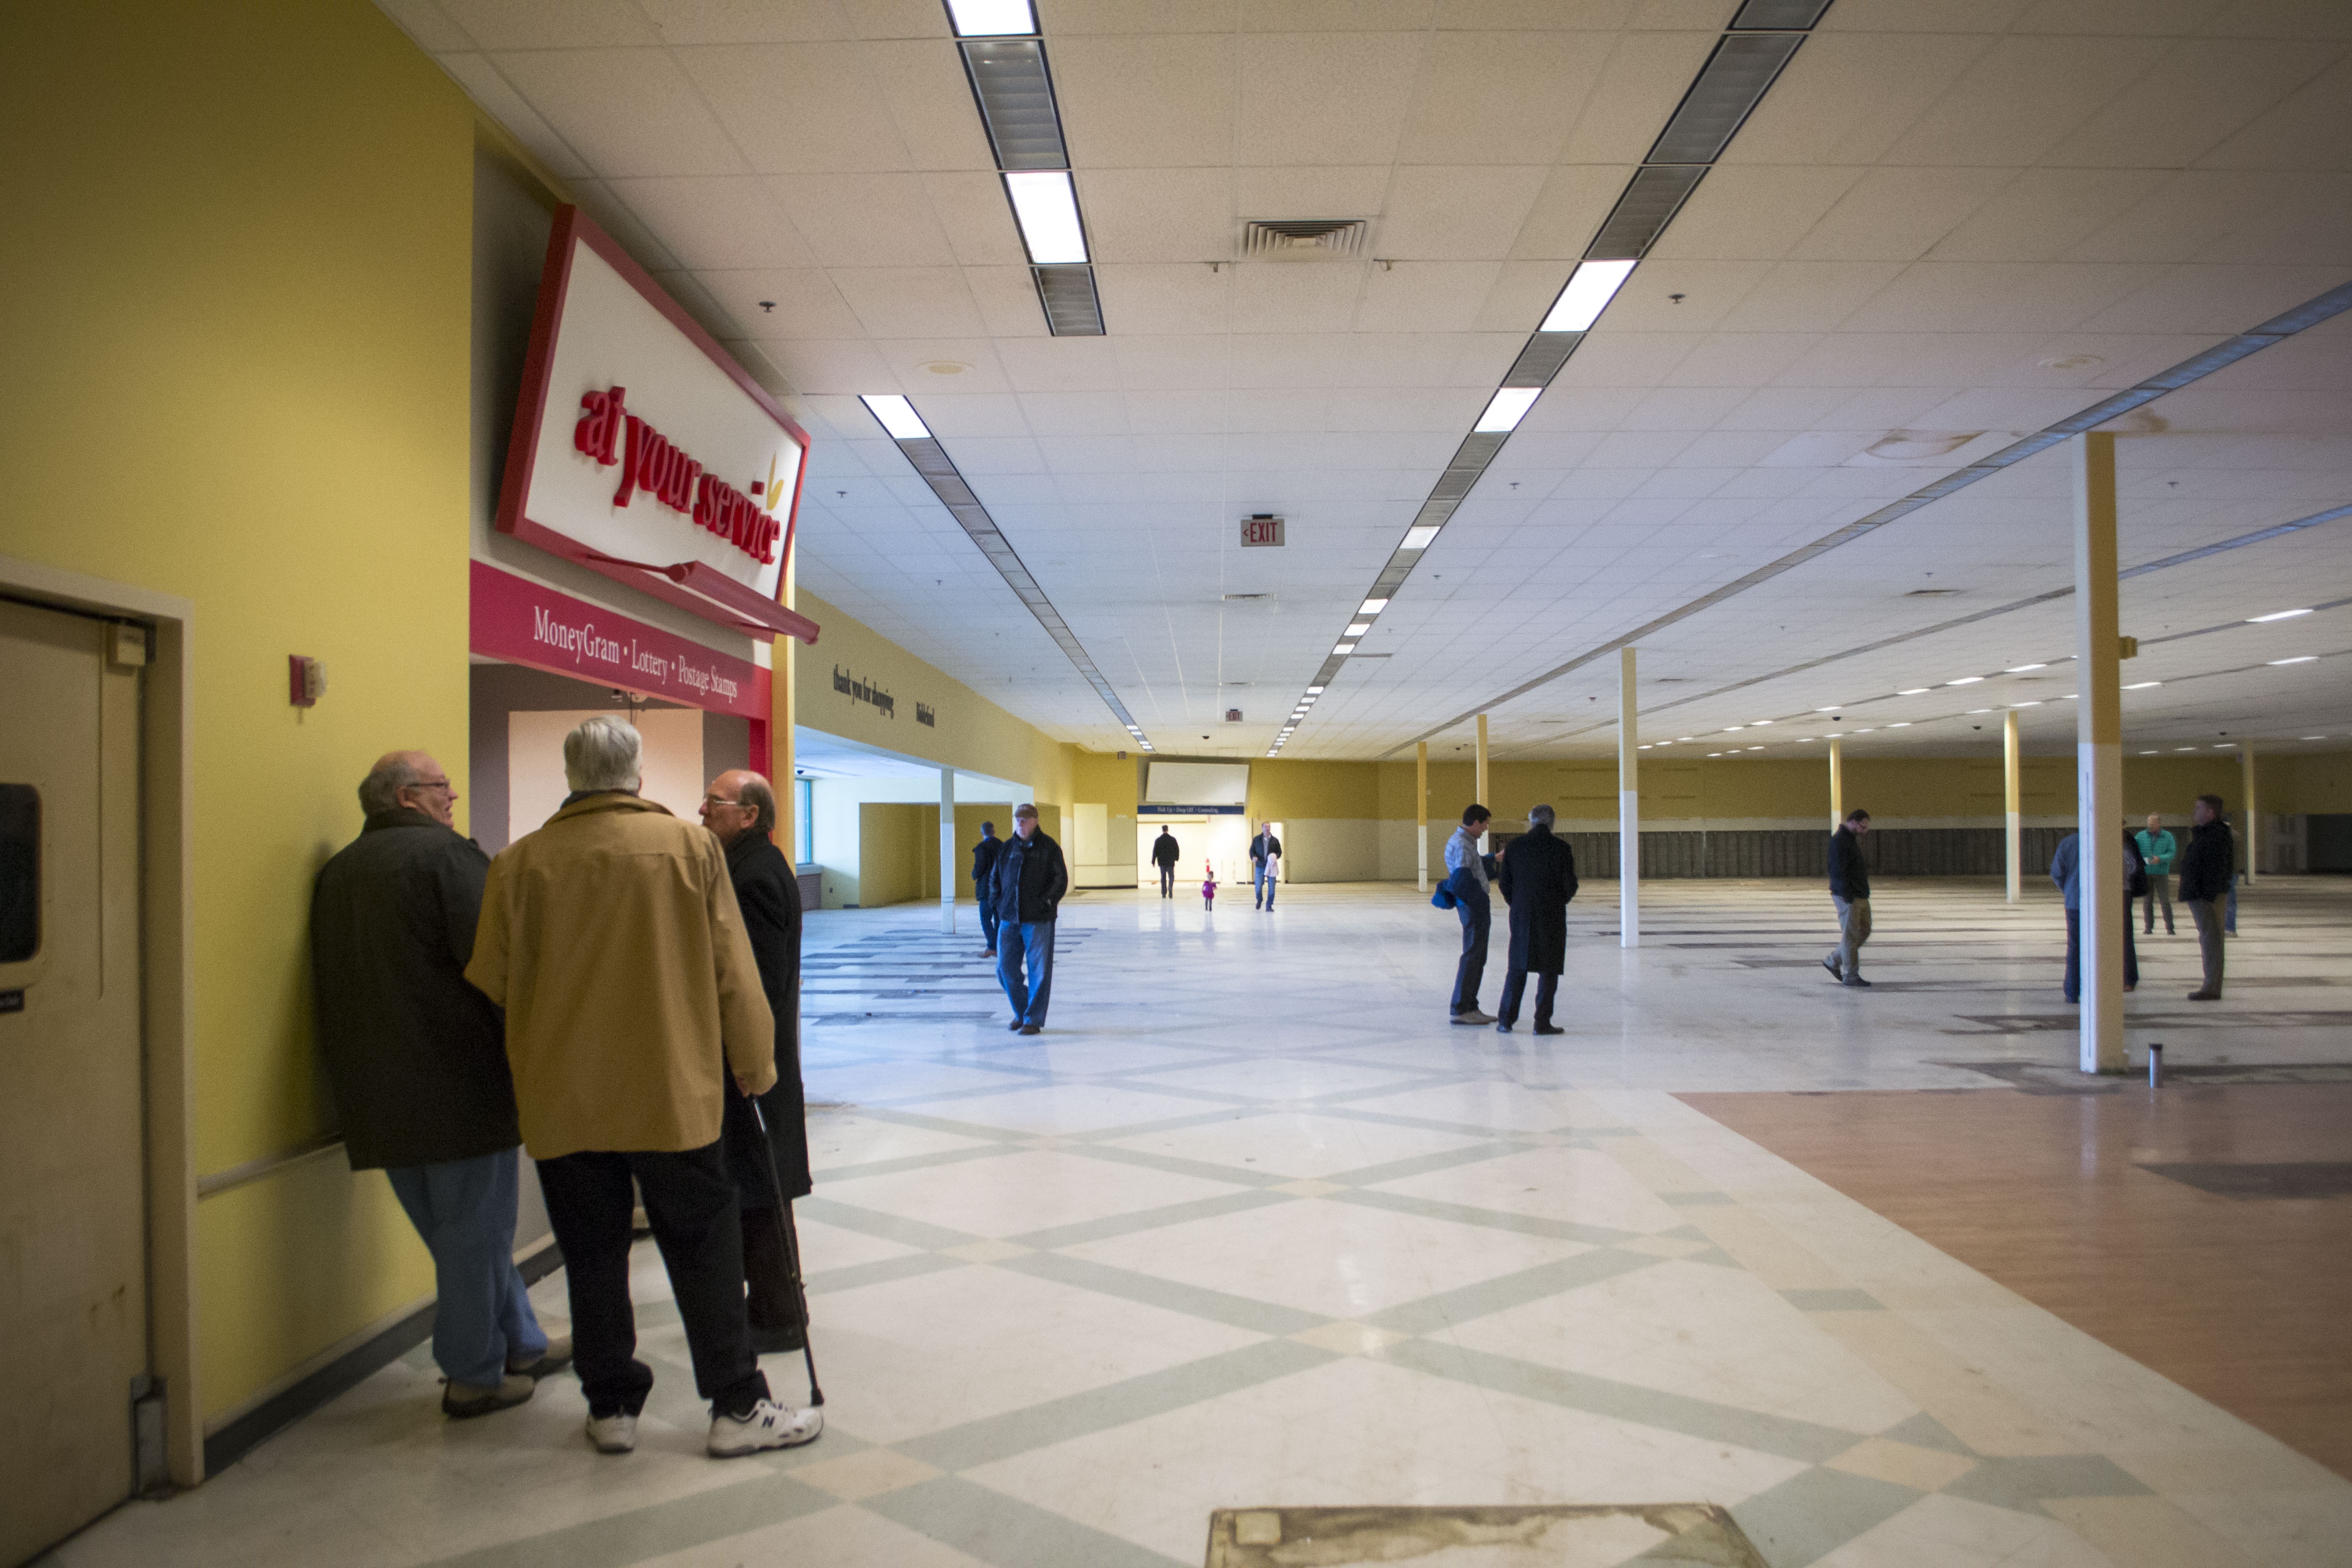 Potential bidders explore the interior of the vacant Shaw's building in Biddeford prior to auction on Friday. The building has been vacant since July 4, 2015, when operations ceased due to competition from other stores in close proximity. ALAN BENNETT/Journal Tribune